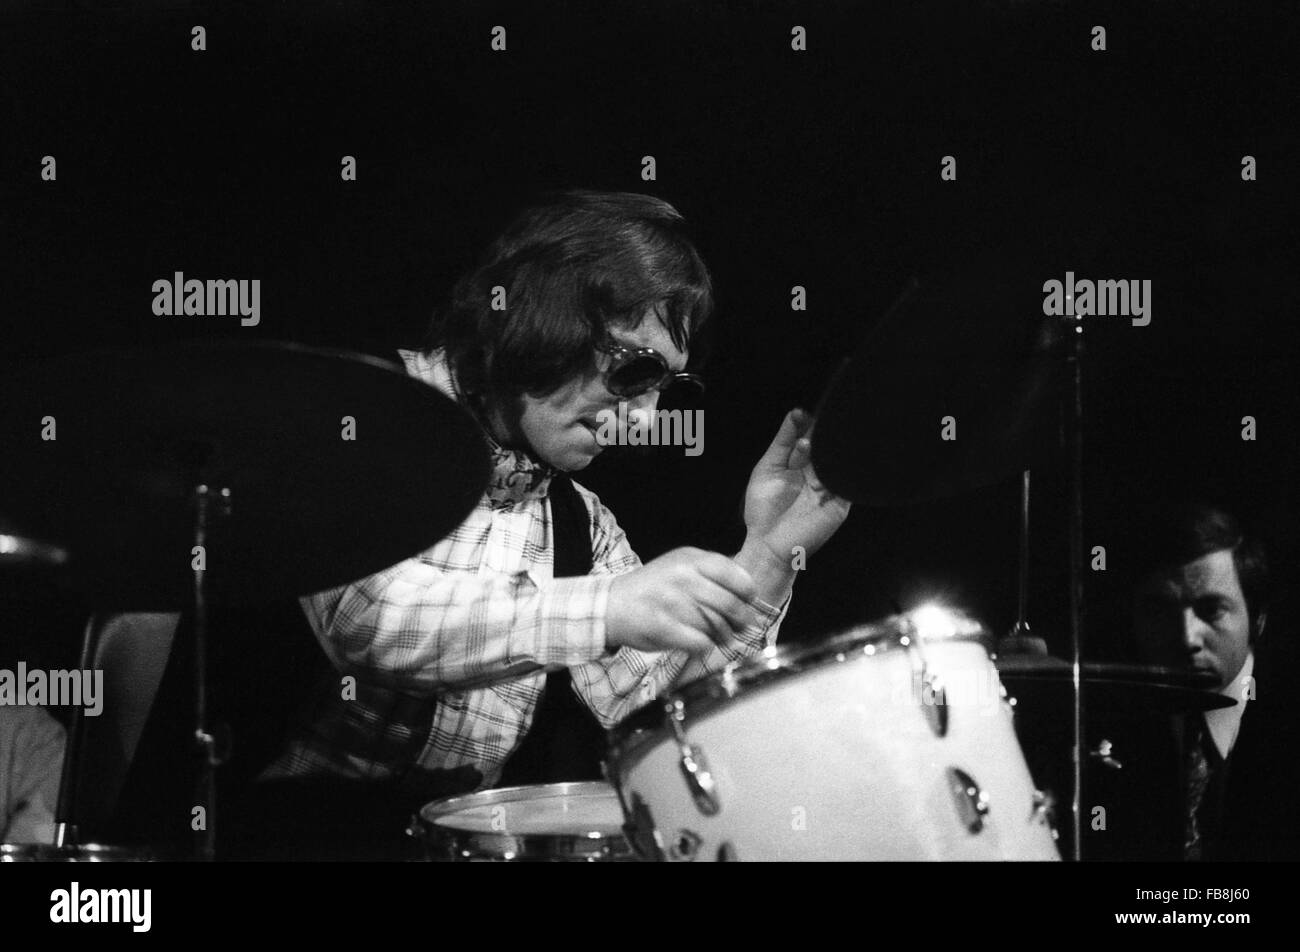 Jacques Thollot -  1970  -  France  -  Jacques Thollot, jazz drums player, concert in 1970   -  Philippe Gras / - Stock Image